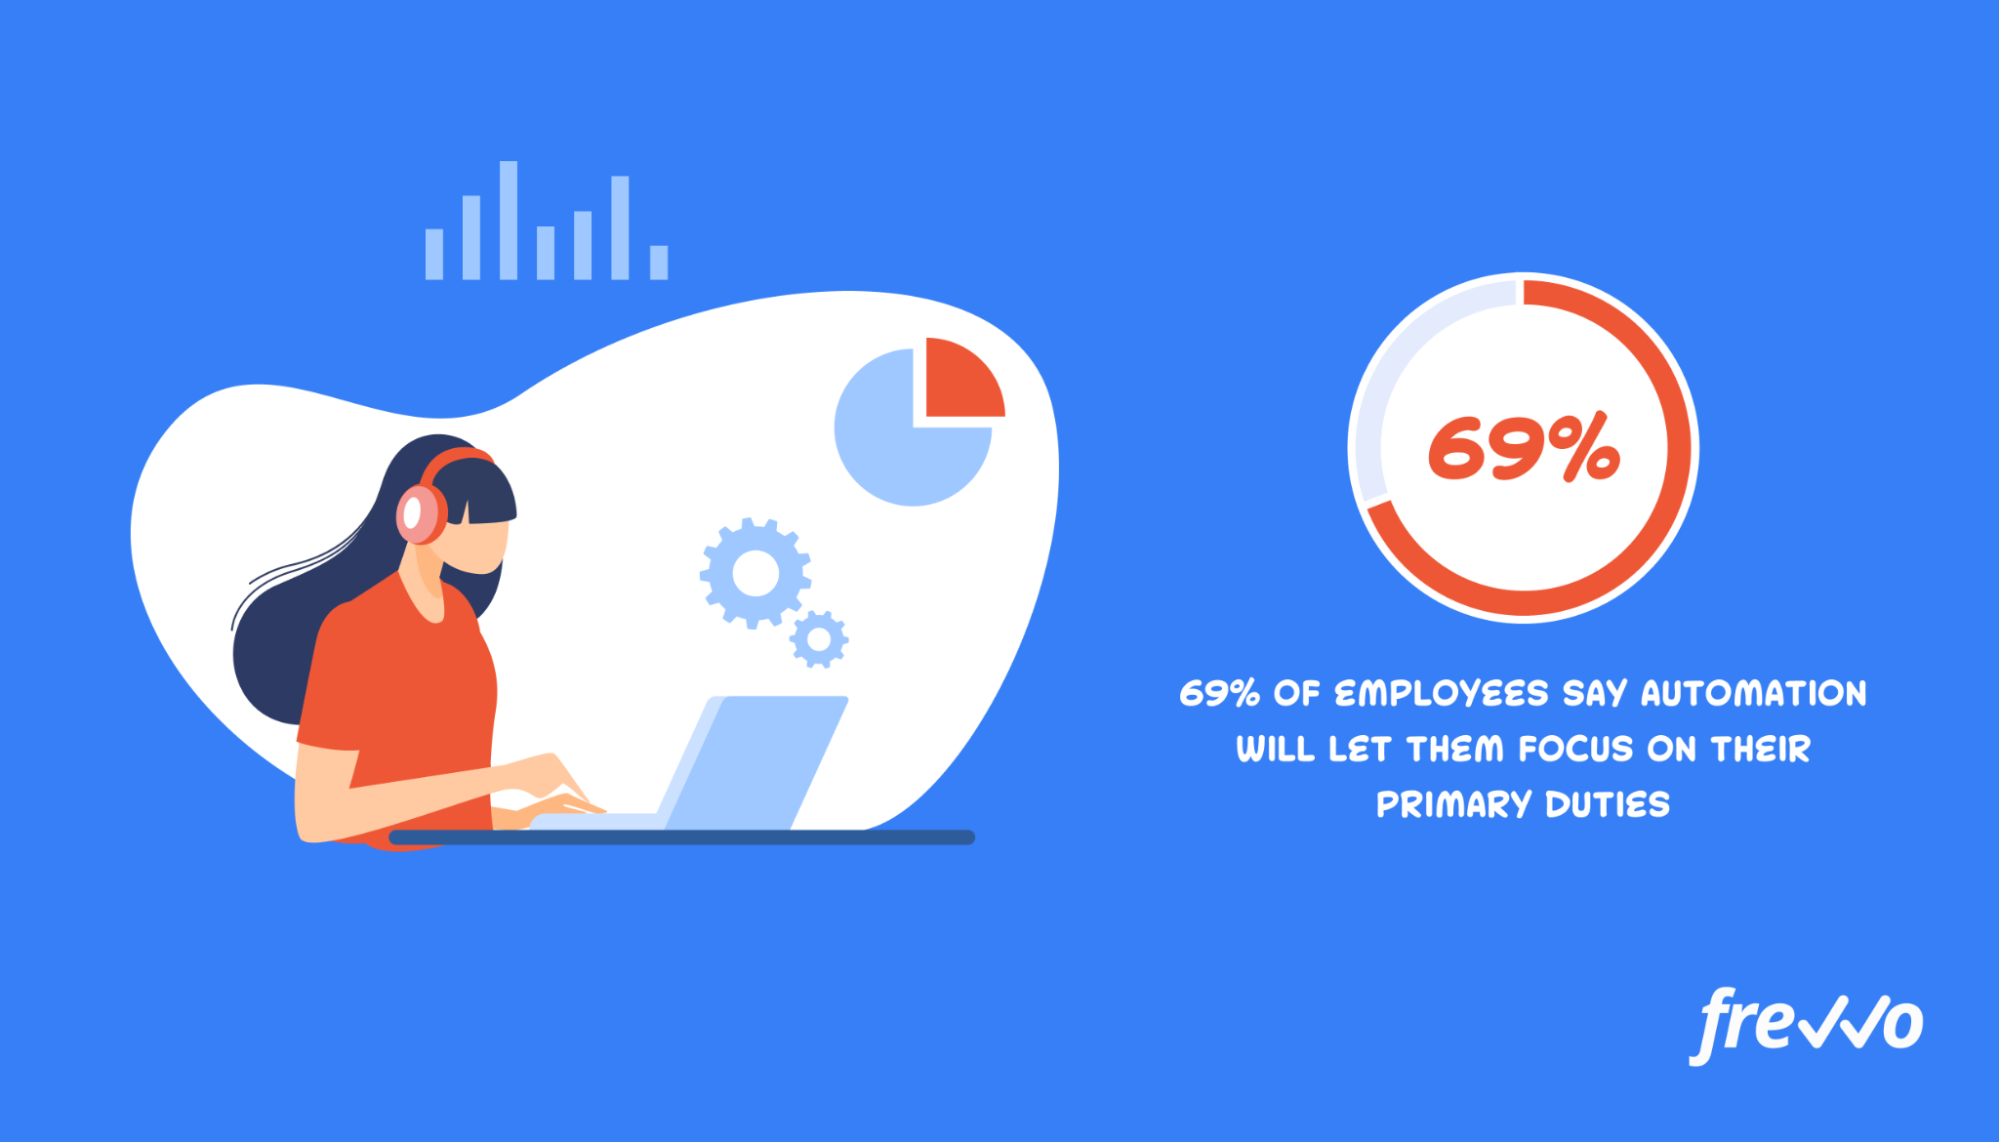 69% of employees say automation will let them focus on their primary duties